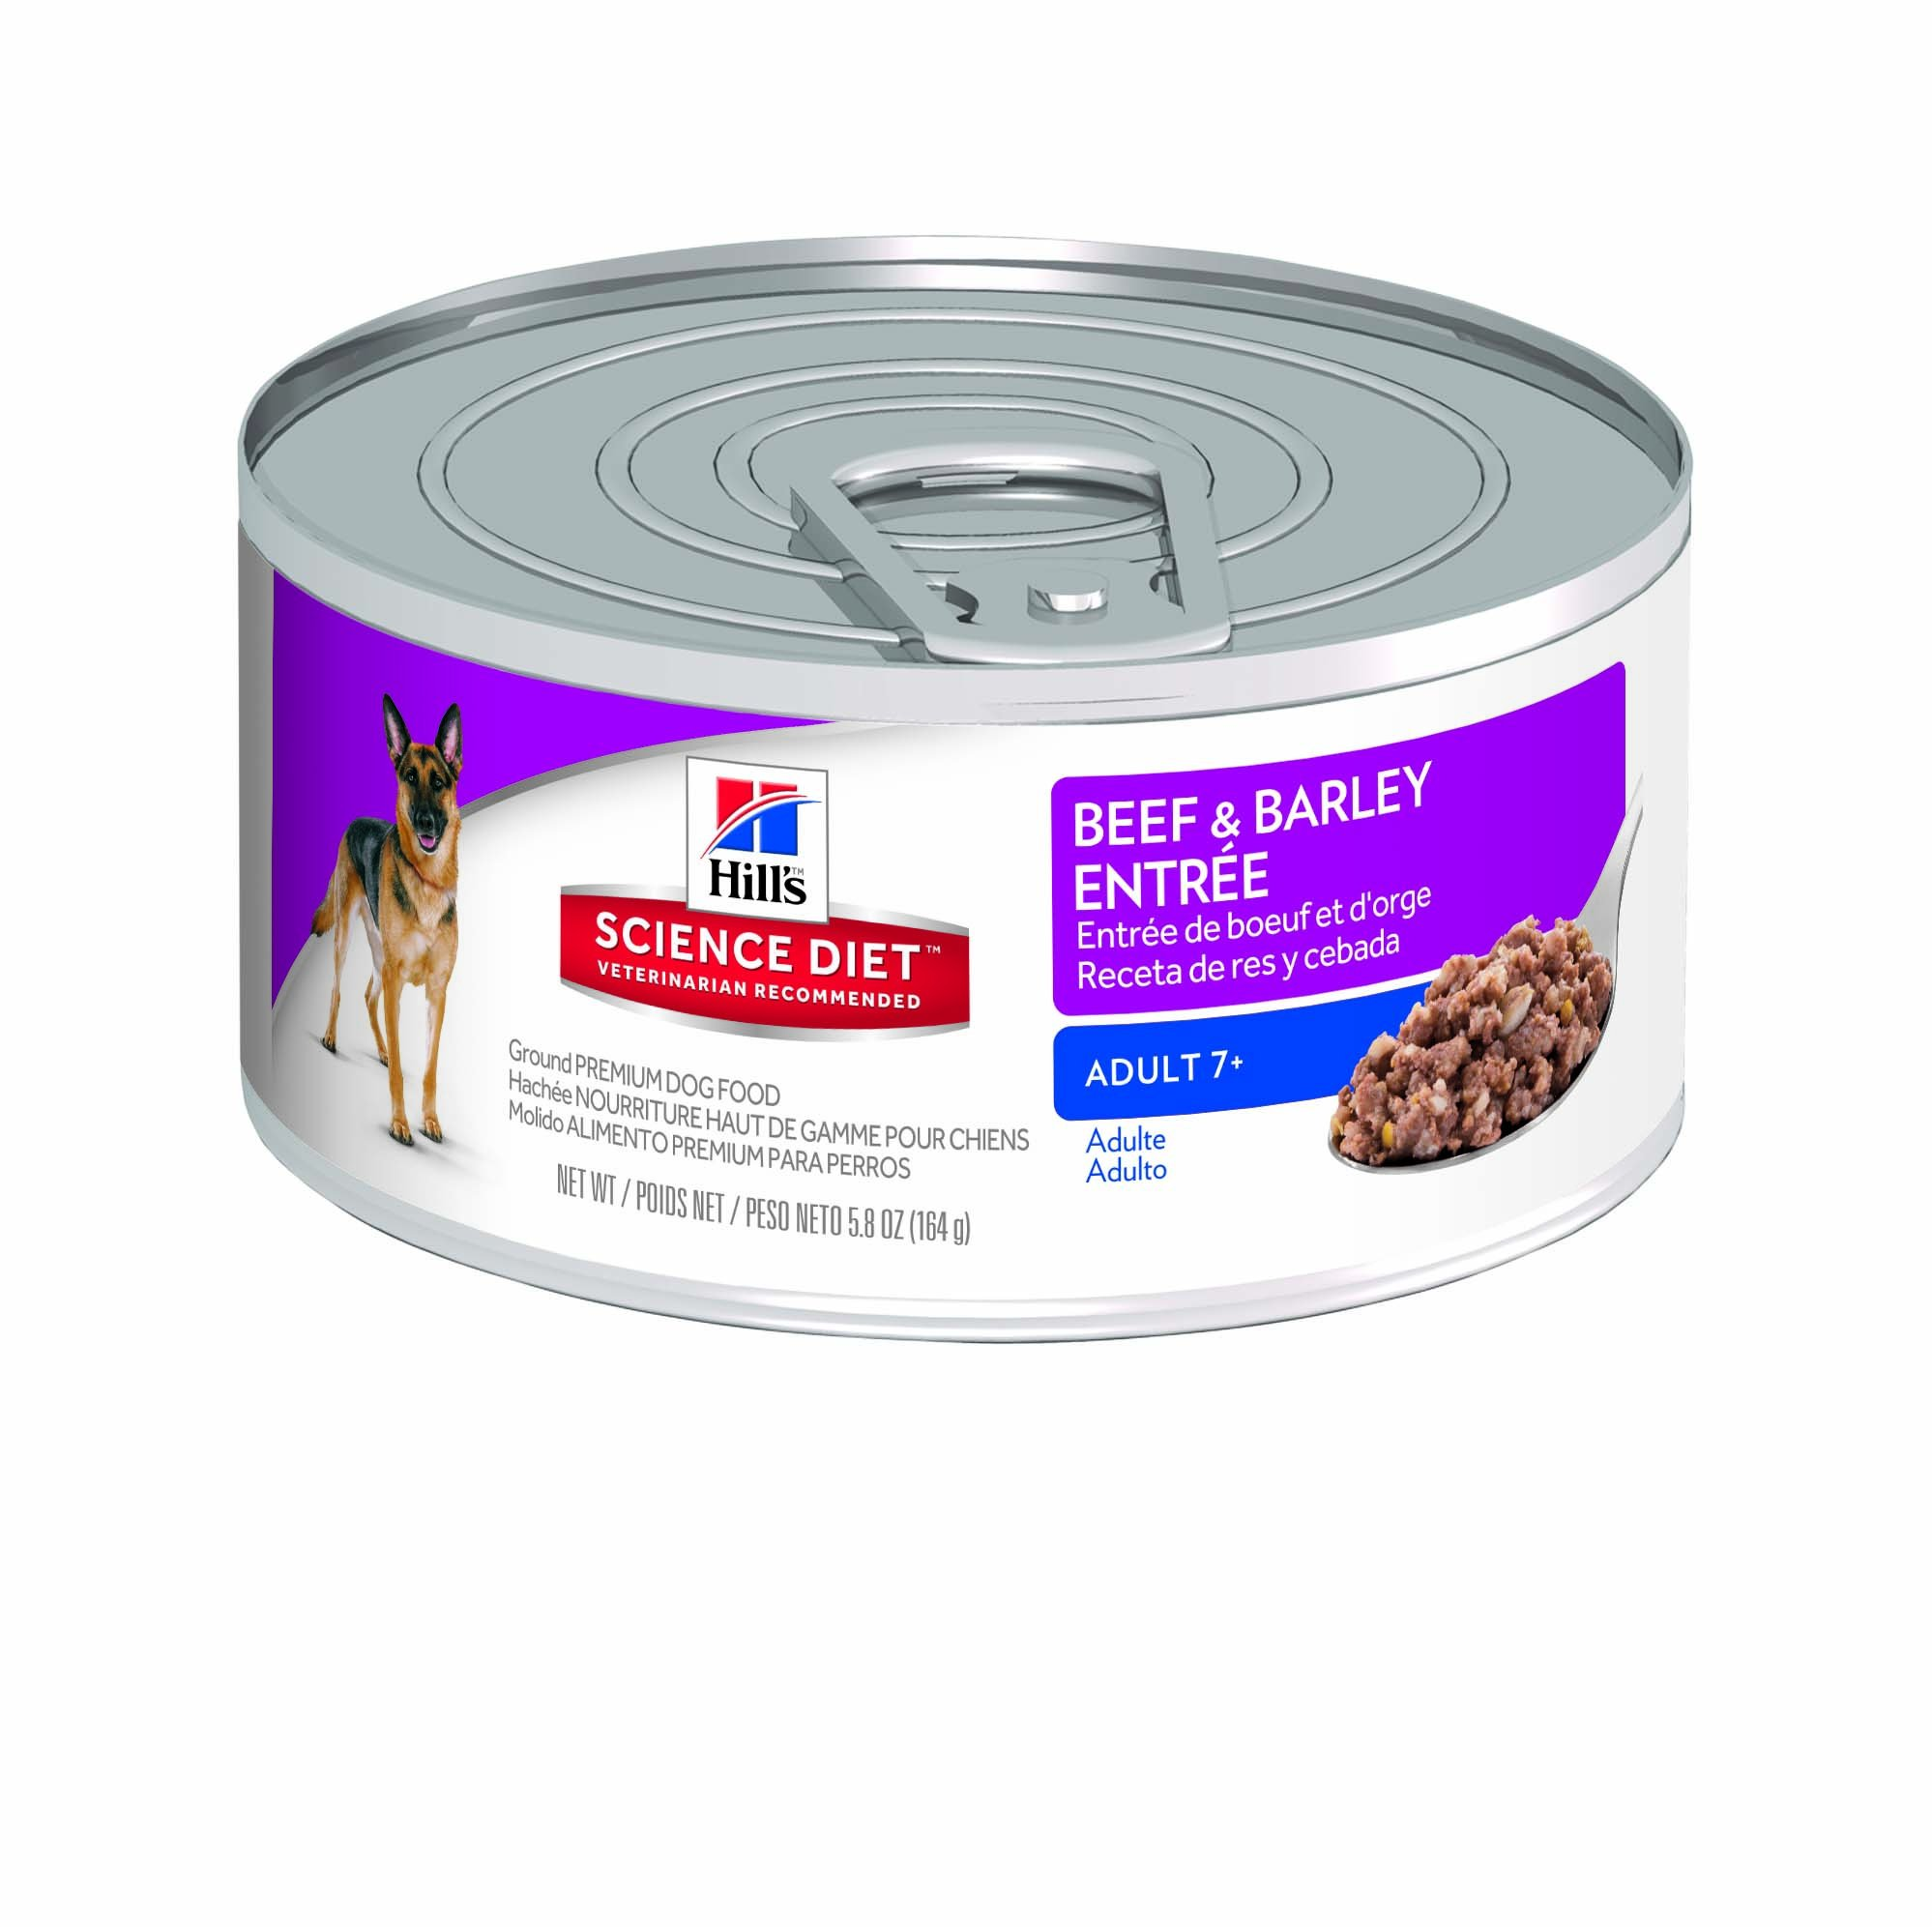 Hill's Science Diet Wet Dog Food, Adult 7+ for Senior Dogs, Beef & Barley Recipe, 5.8 oz, 24-pack